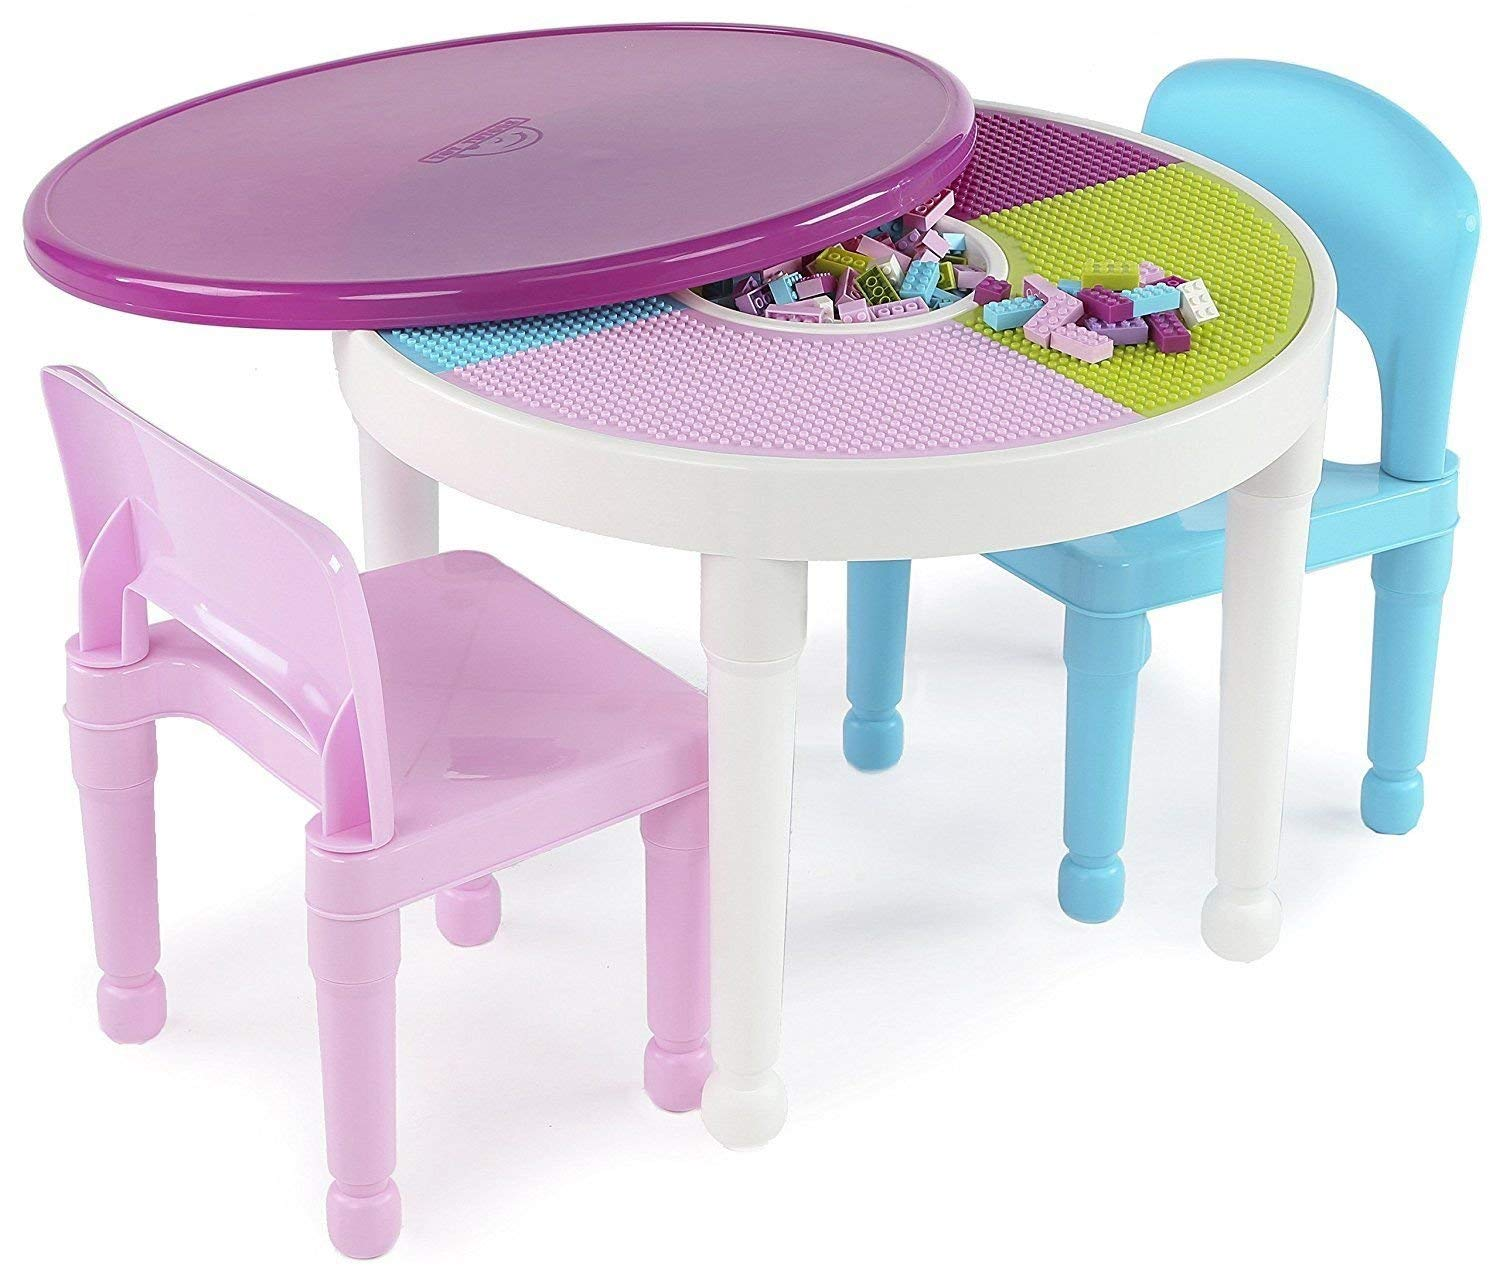 Generic Able Chai Chairs Sturdy E Ch Plastic Toddler C Toddle Desk Bright  Toddler Outdoo Kids